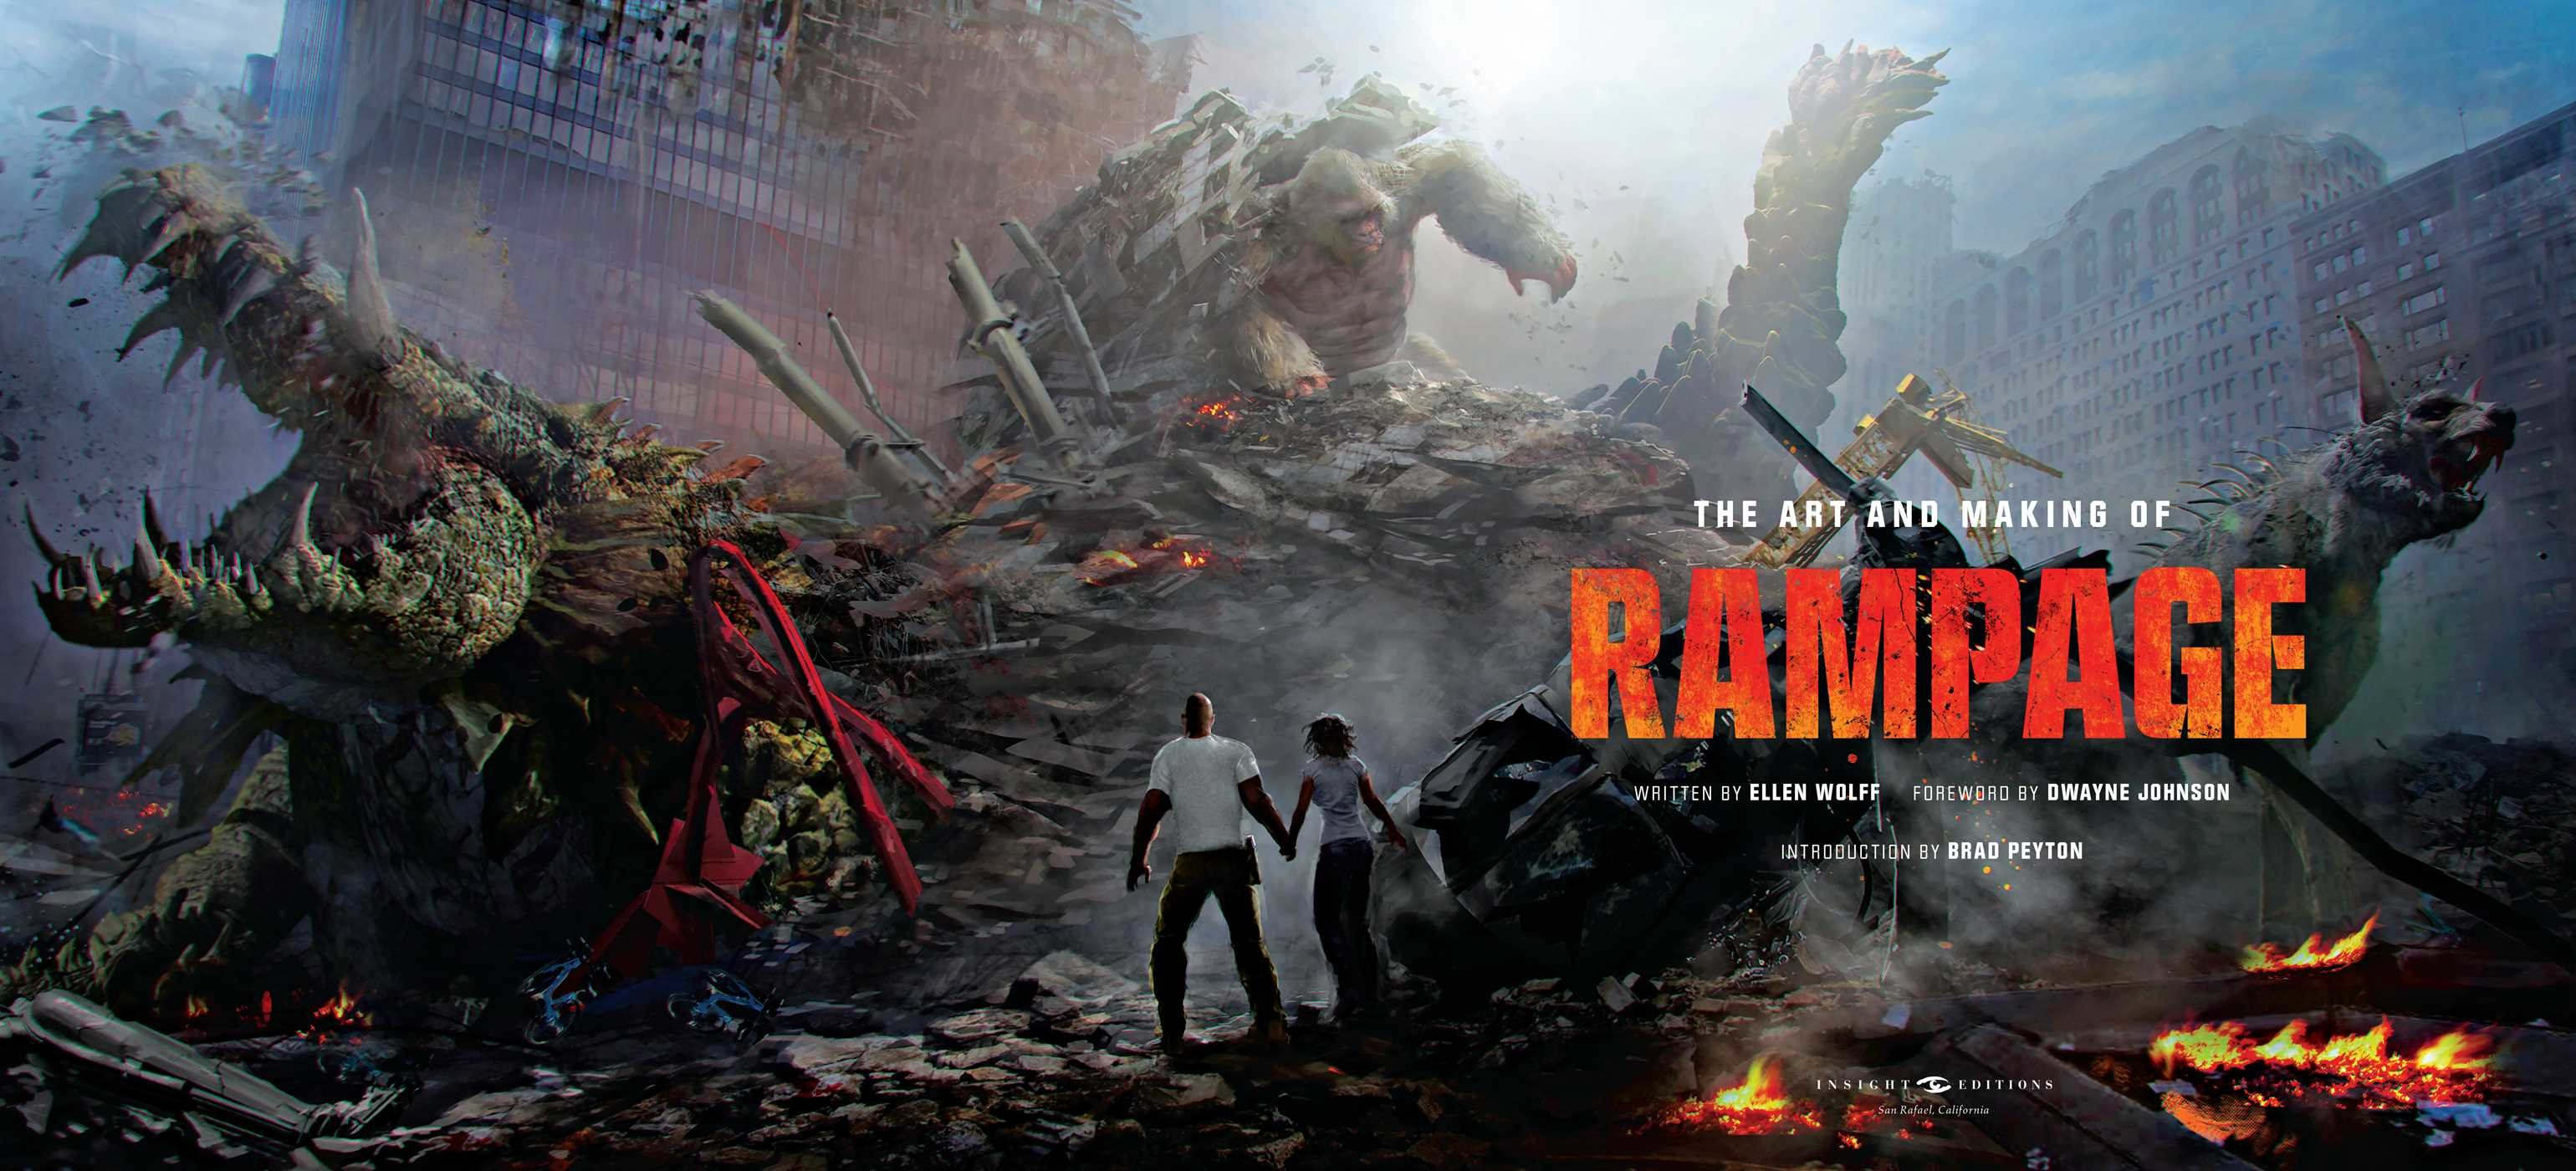 the art and making of rampage book by ellen wolff brad